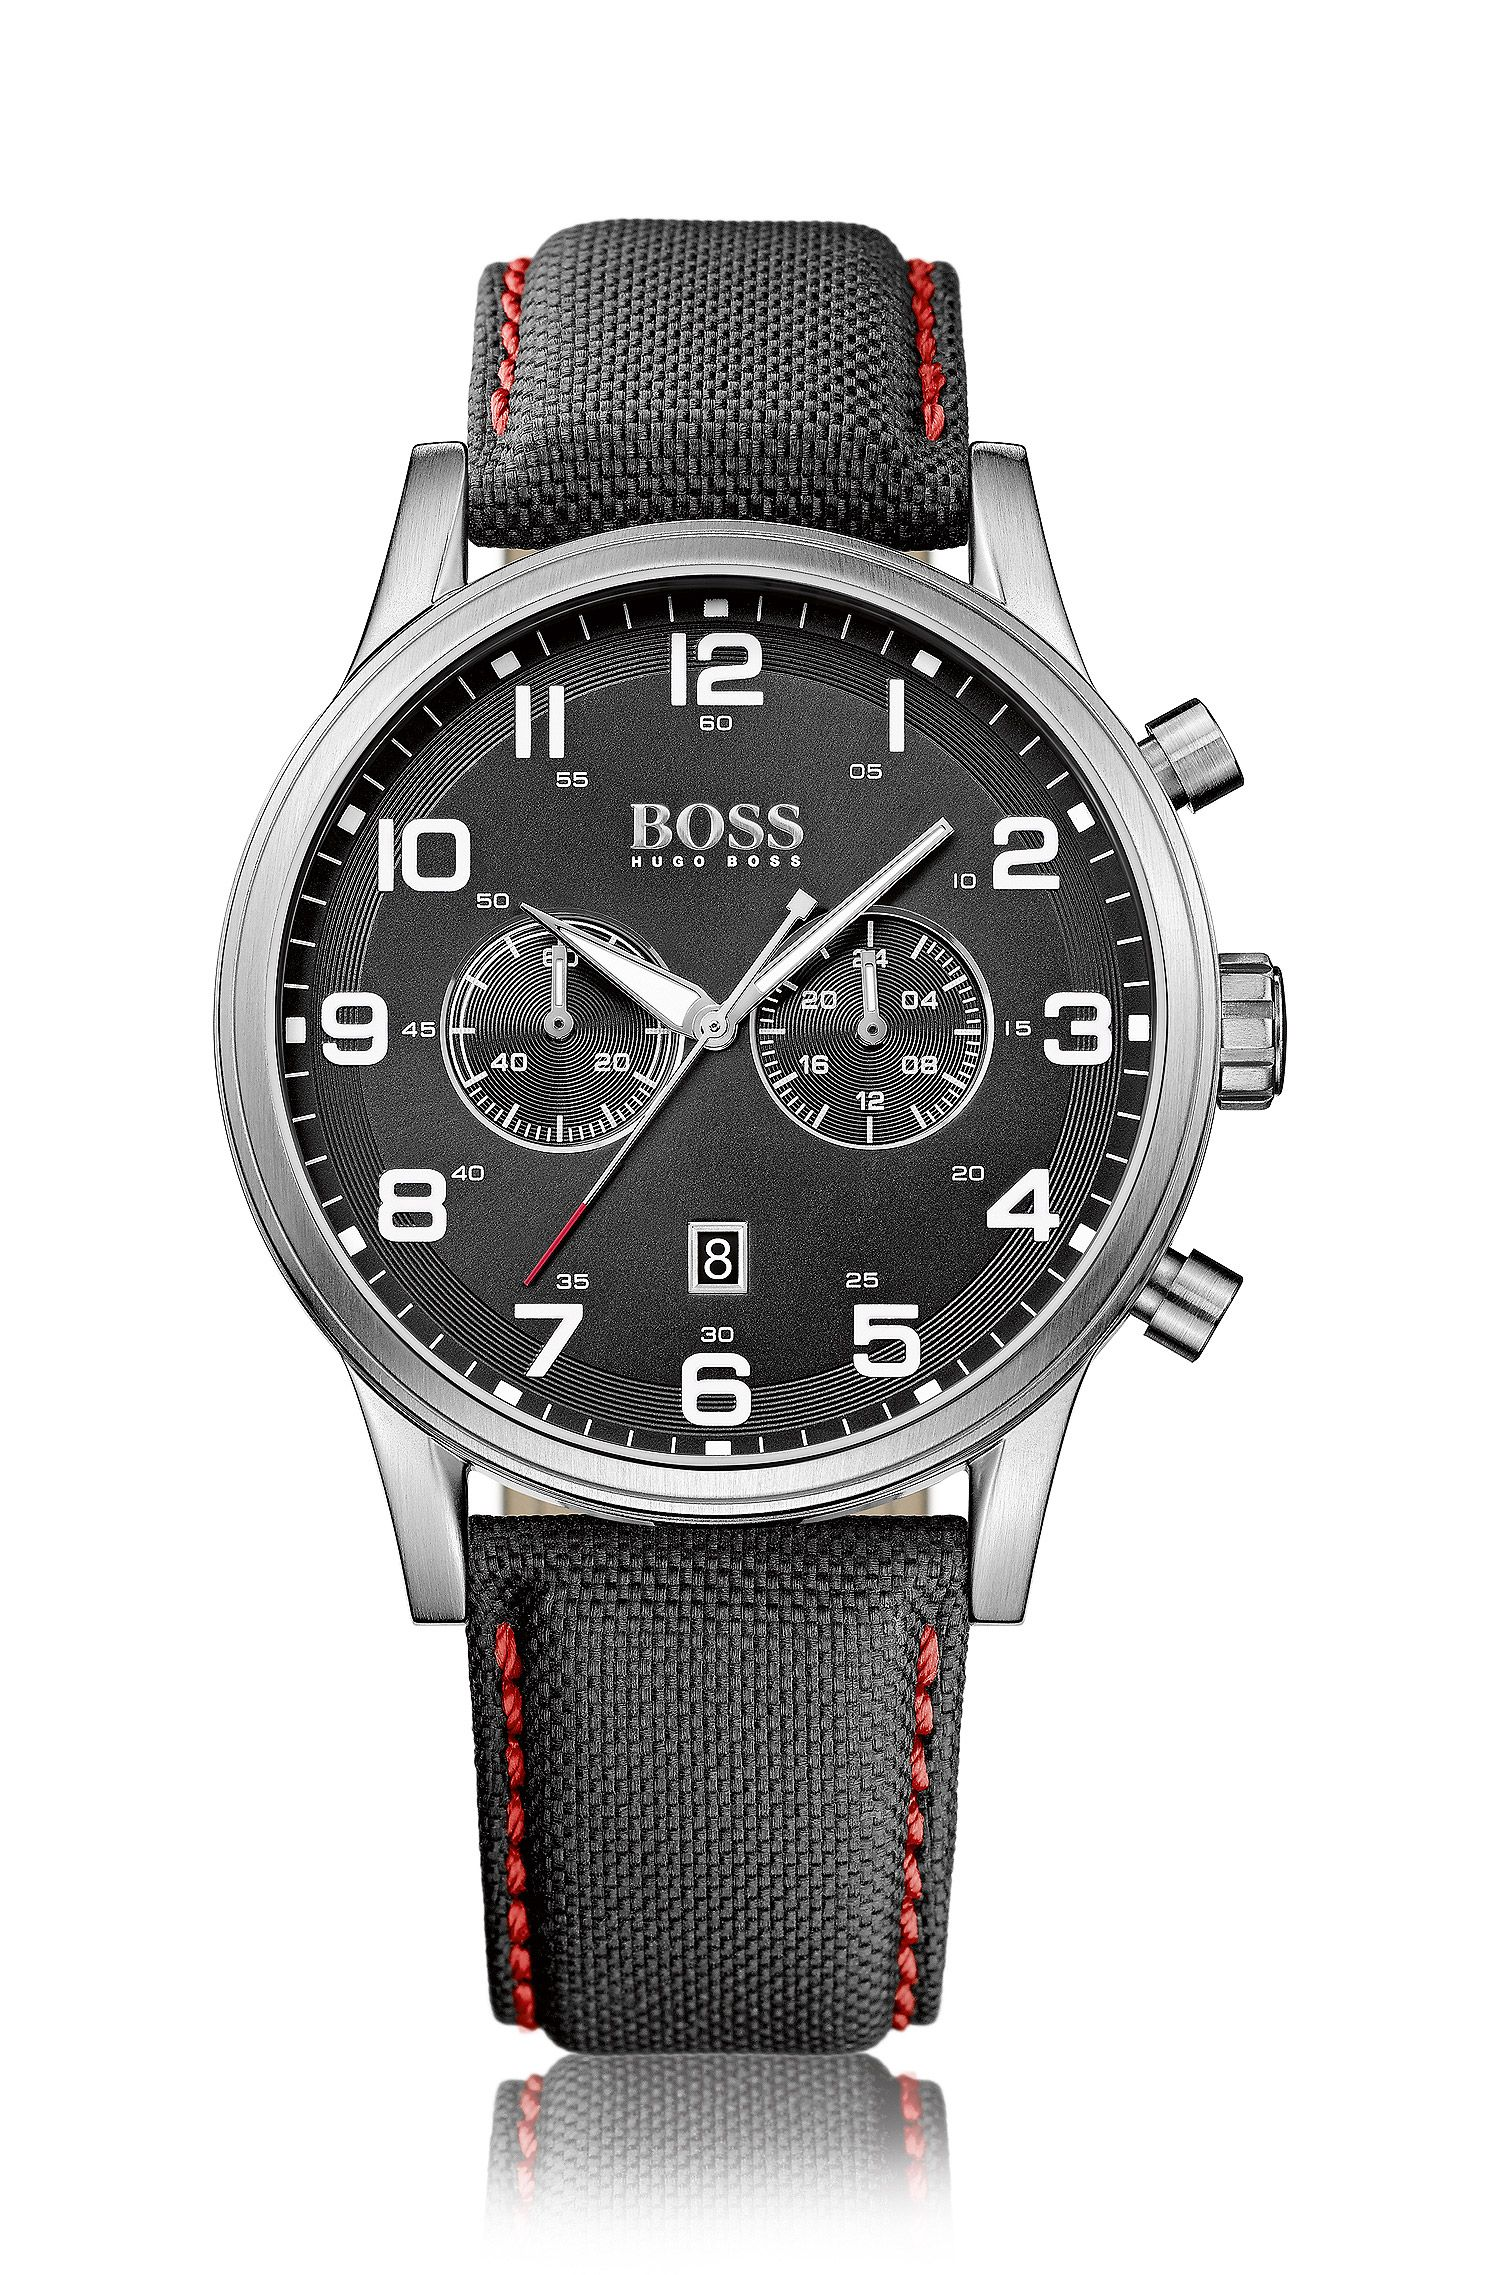 Brushed stainless-steel two-eye flyback chronograph watch with fabric strap